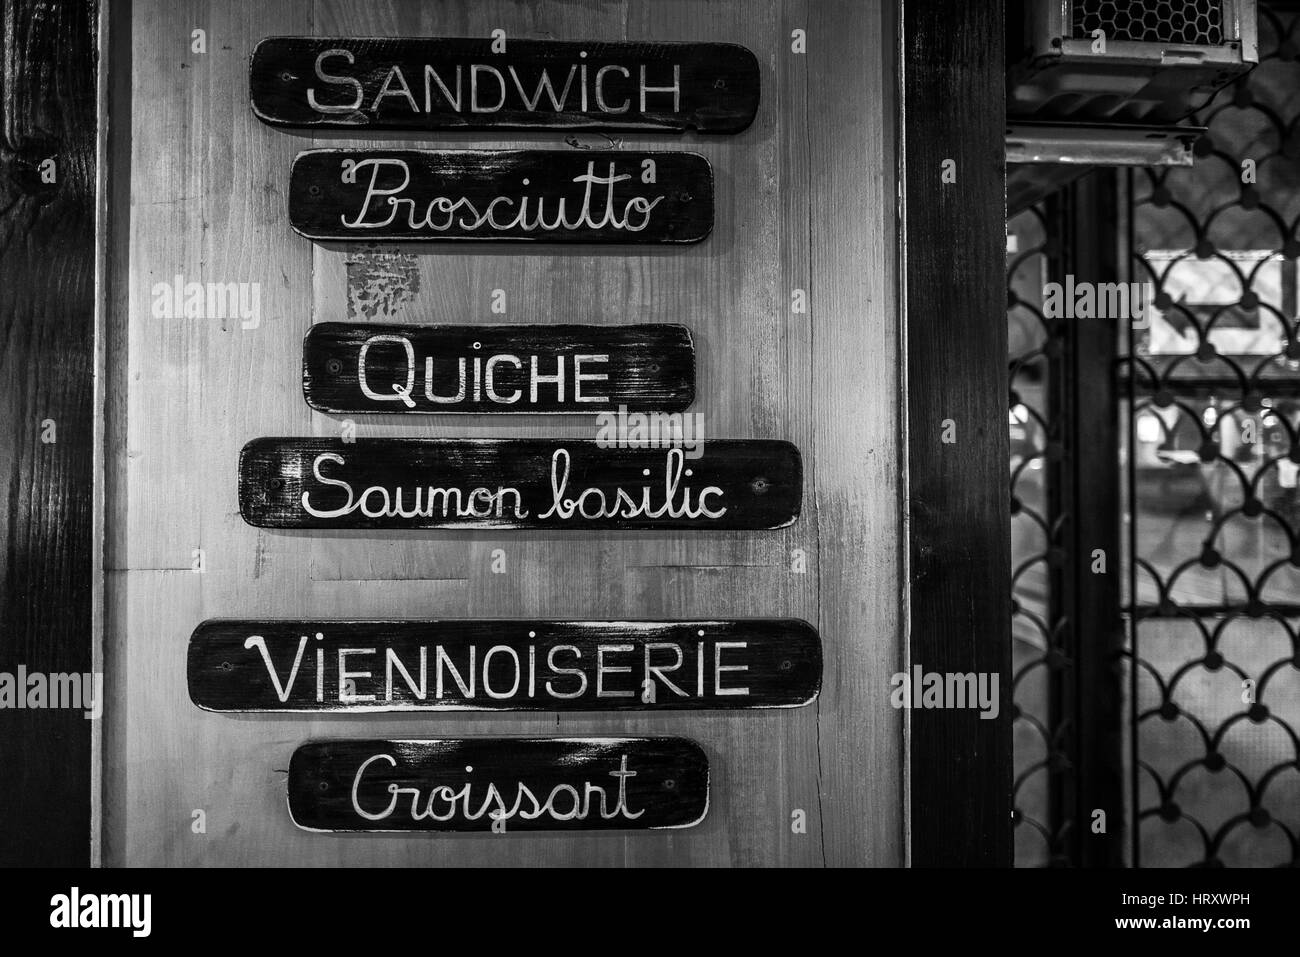 Food Menu on the Wall of a Restaurant from Bucharest, Romania - Stock Image